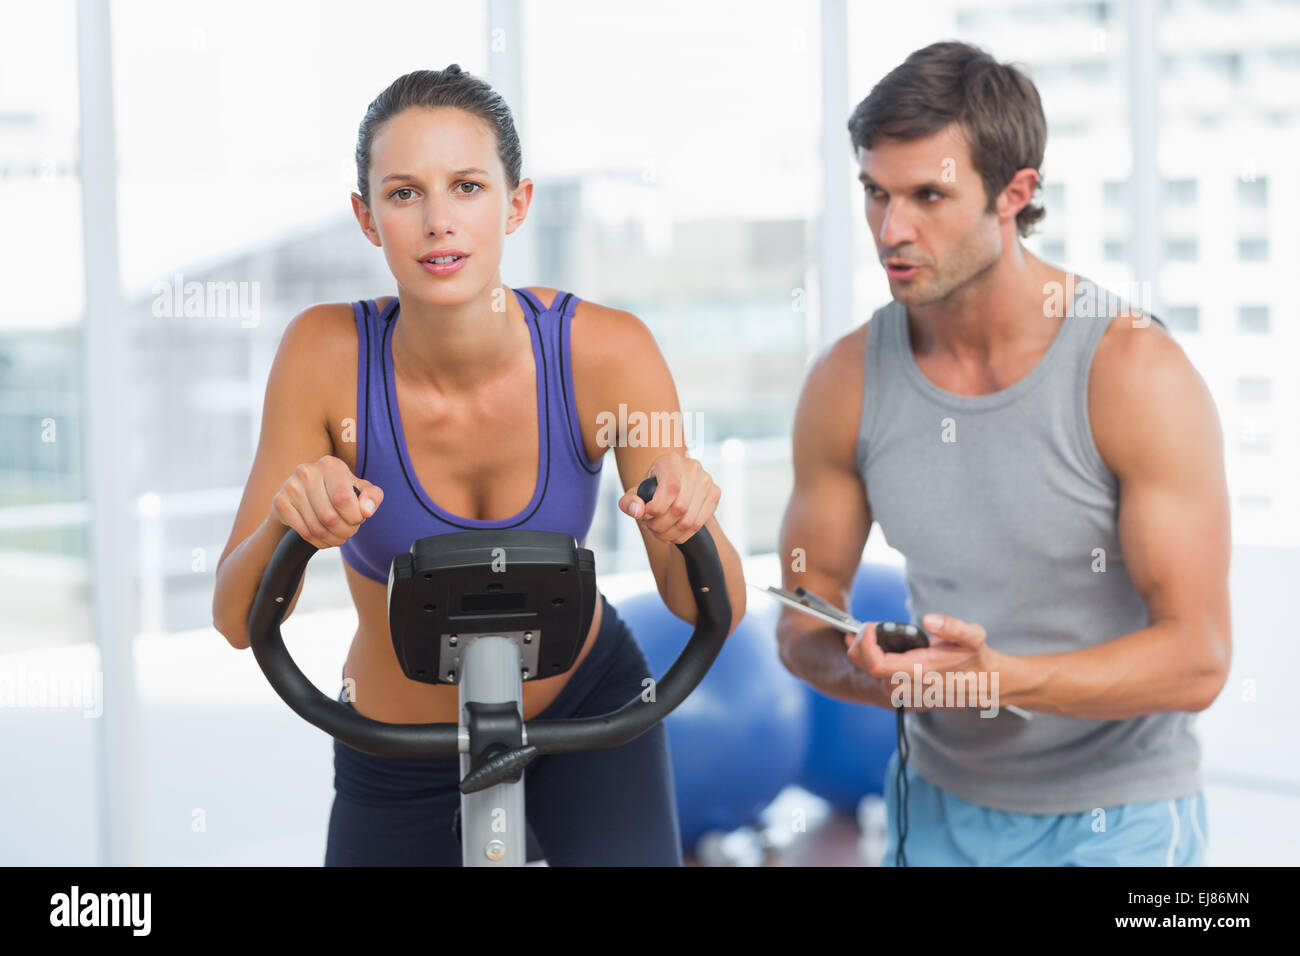 Trainer watching woman work out at spinning class Stock Photo